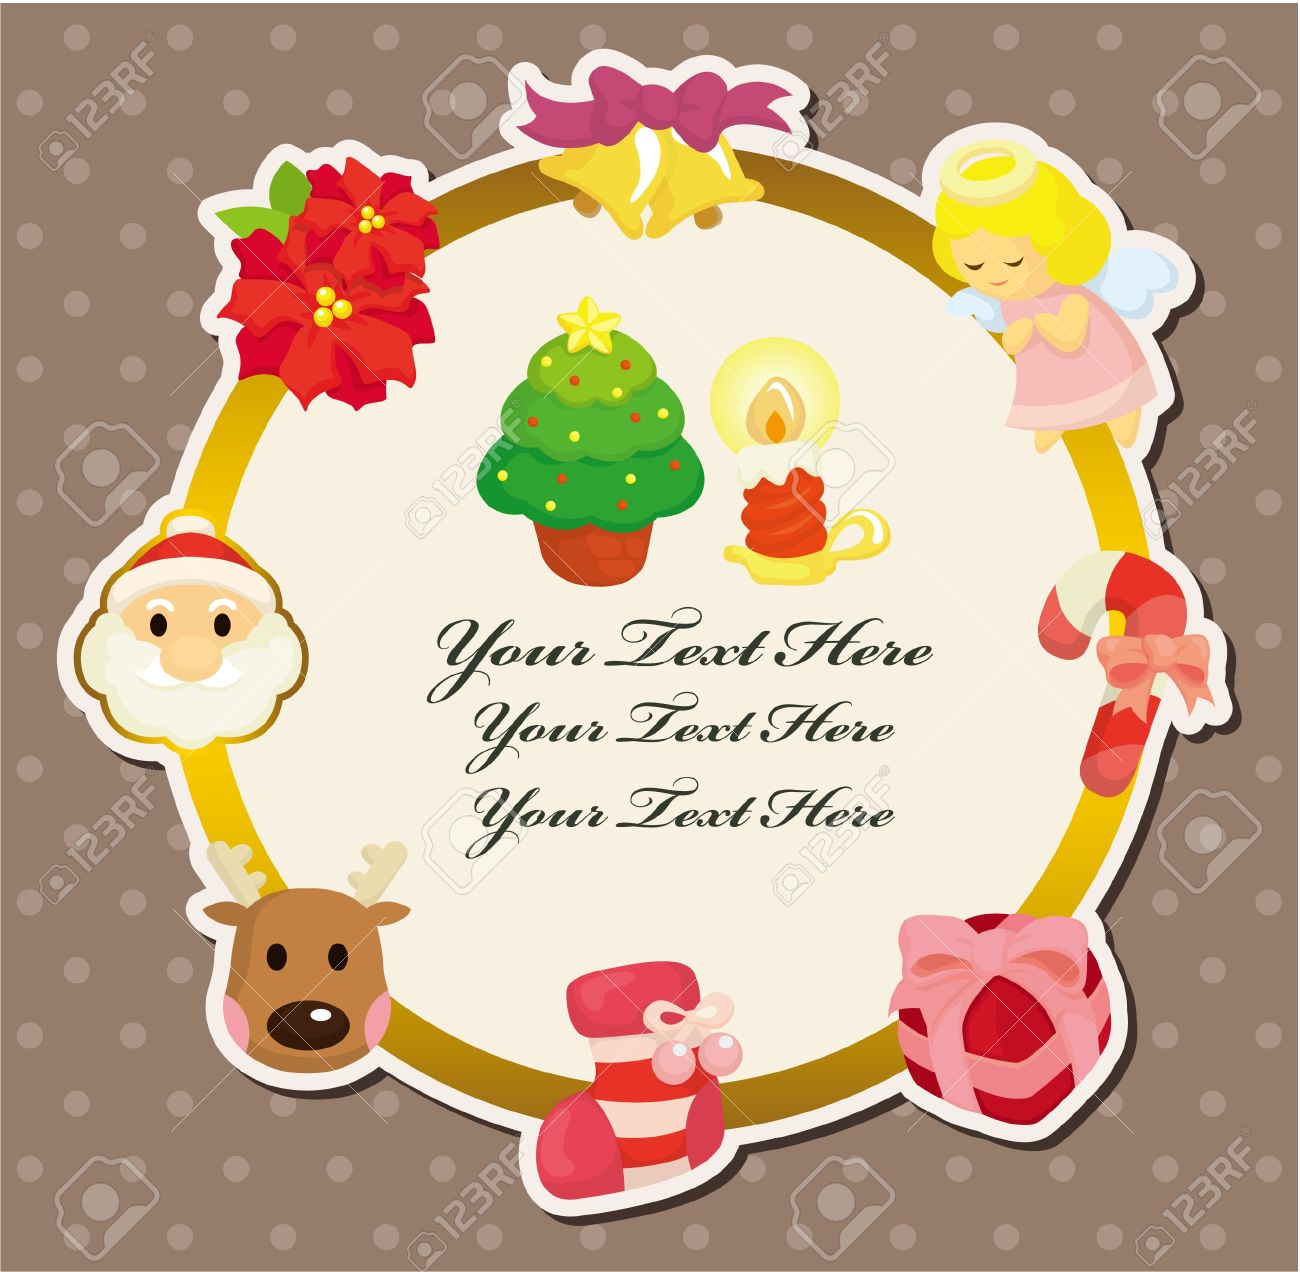 Cute christmas card royalty free cliparts vectors and stock cute christmas card m4hsunfo